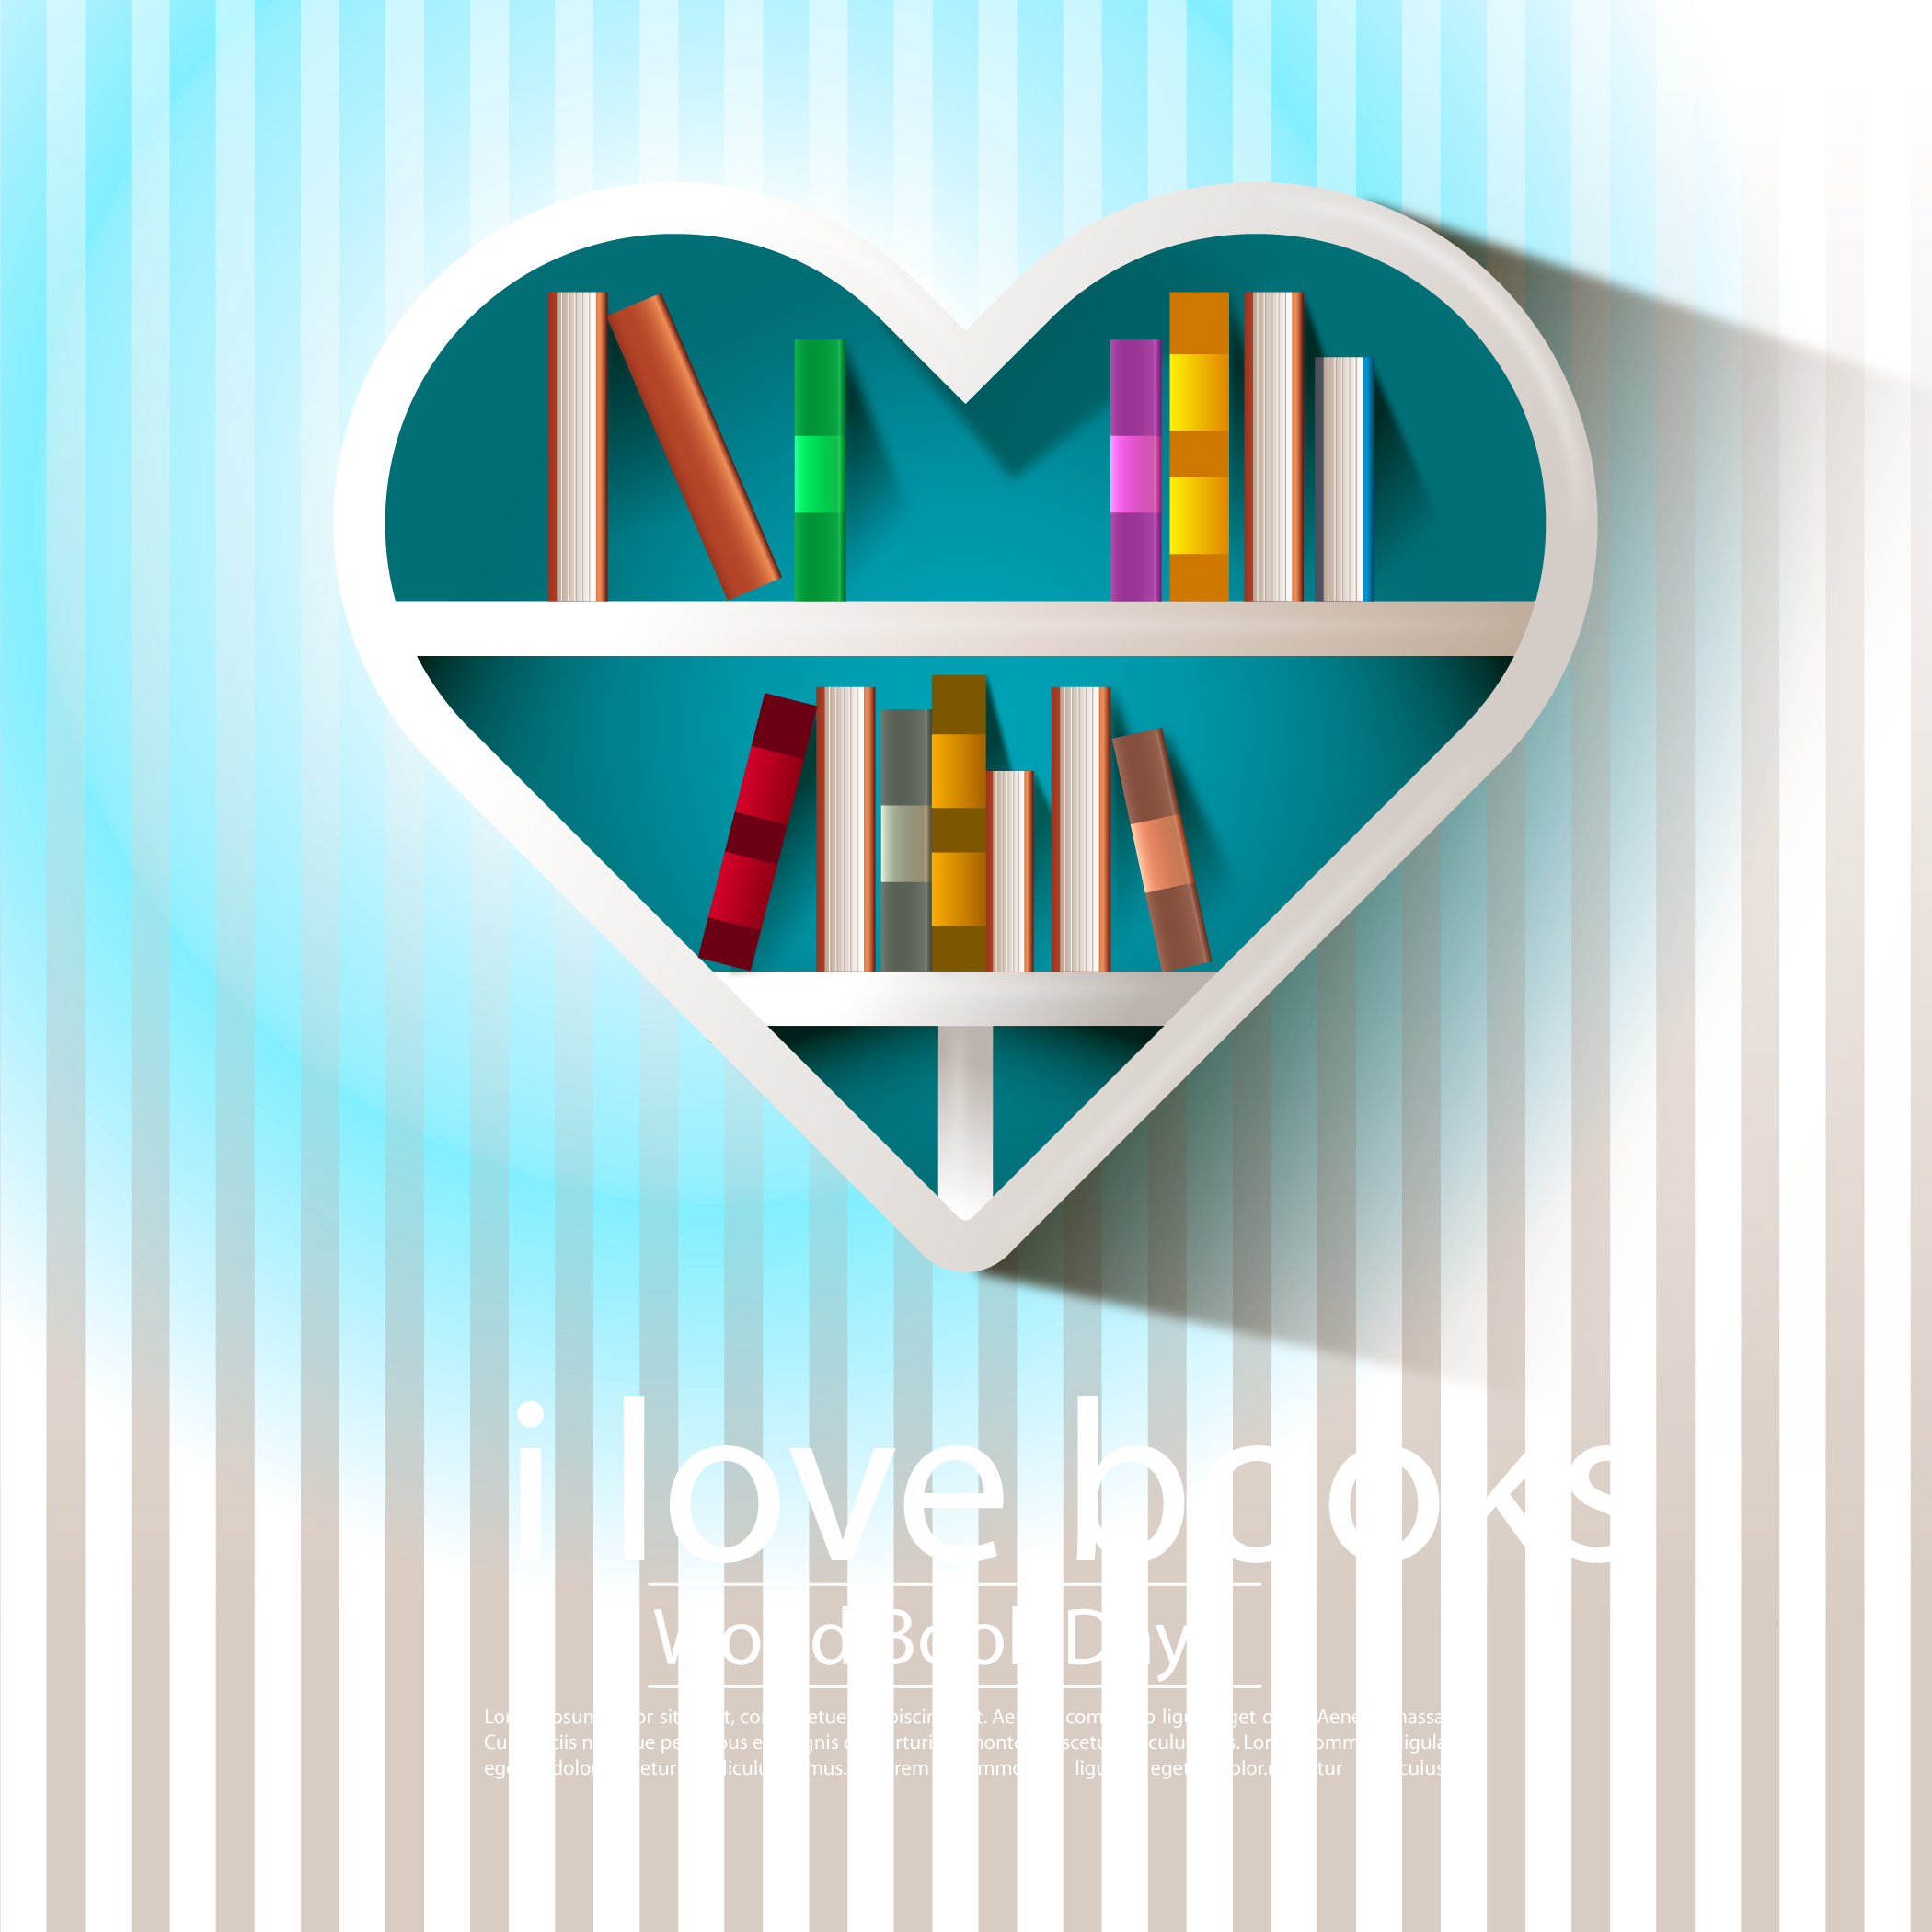 image library stock Bookshelf vector background. Computer file striped heart